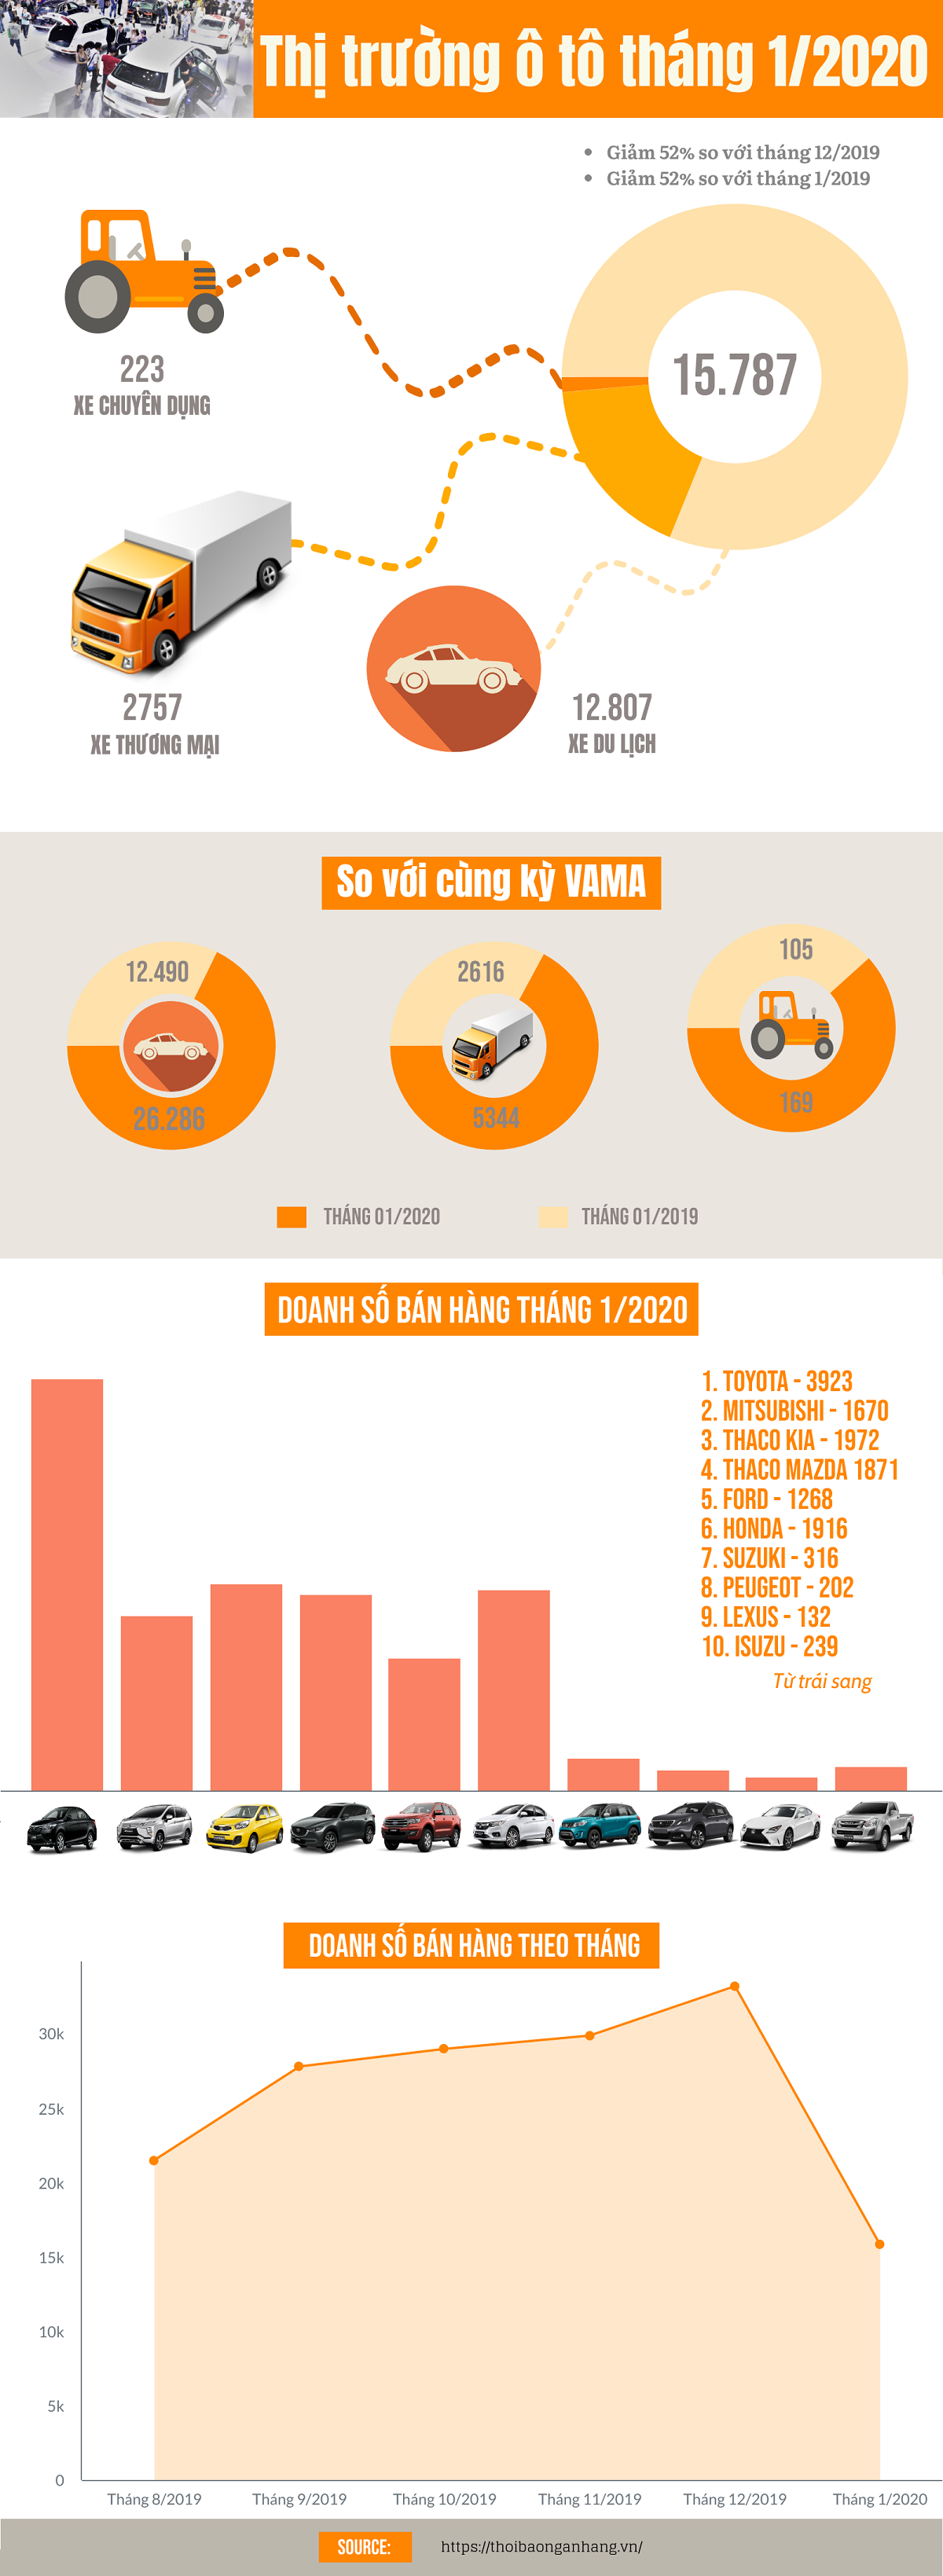 infographic thi truong o to thang 12020 am dam